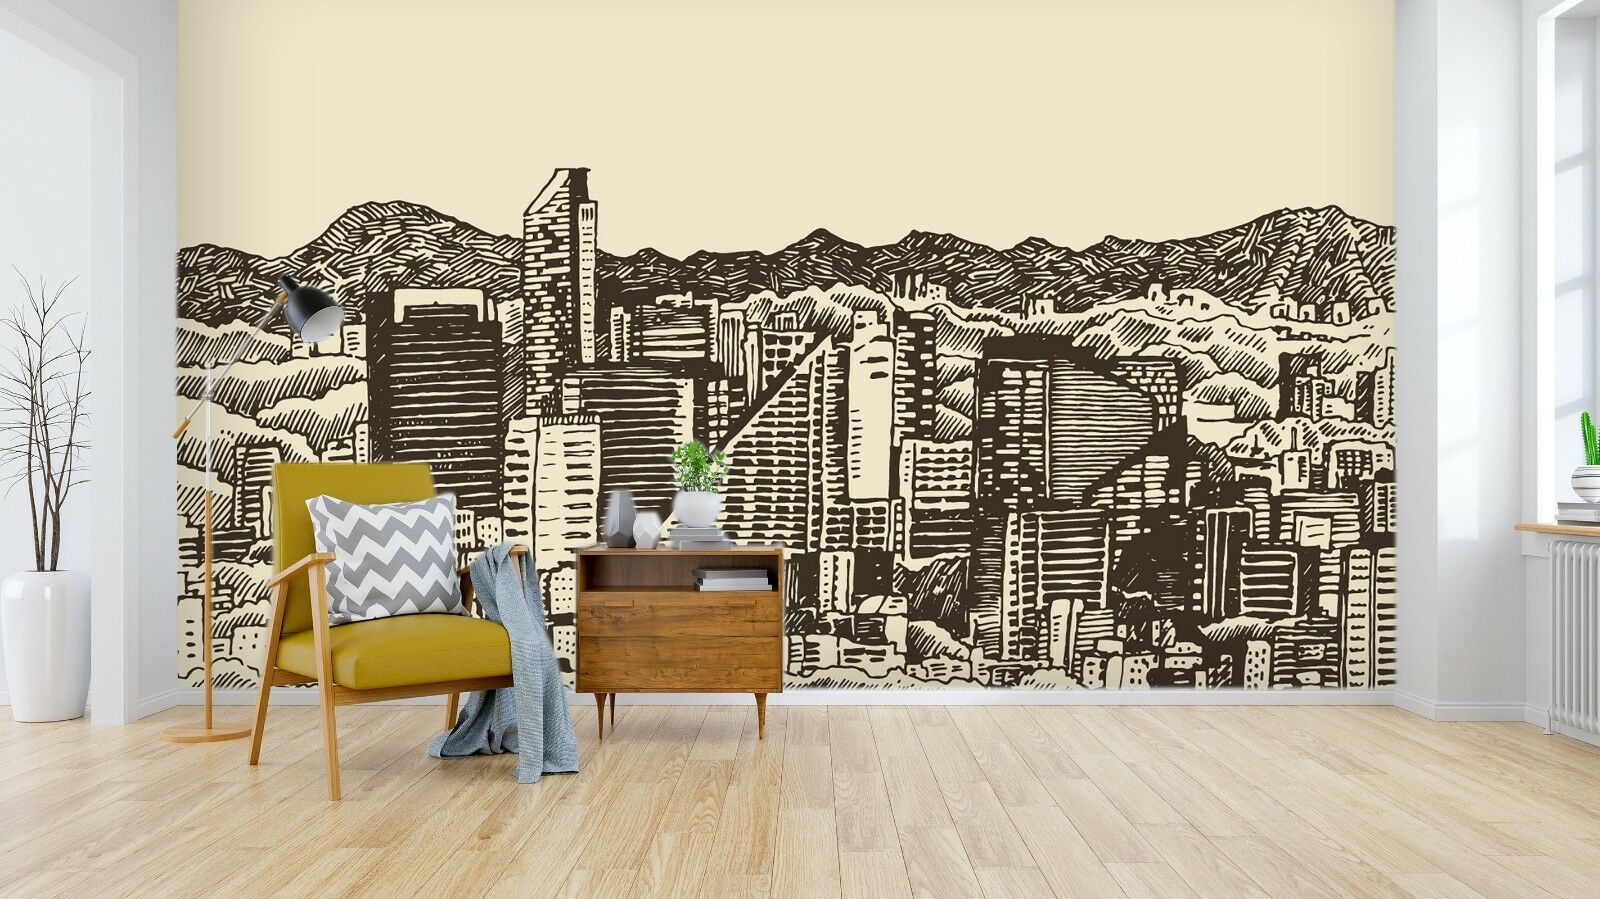 3D Mexico Skyline 9 Wall Paper Exclusive MXY Wallpaper Mural Decal Indoor Wal AJ